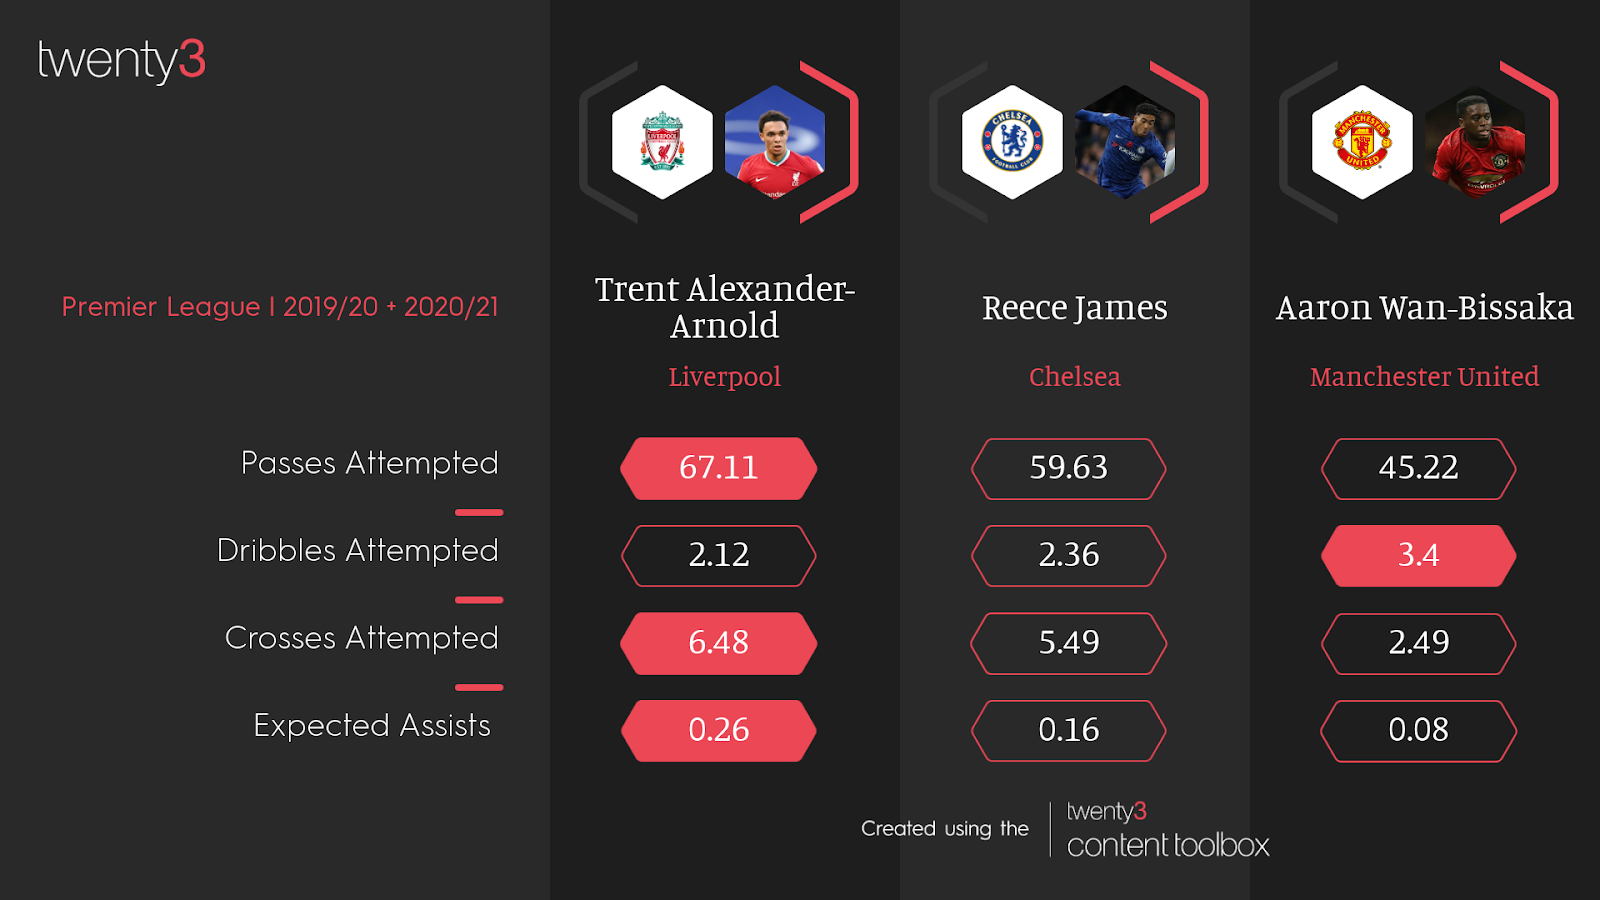 A stats comparison of Trent Alexander-Arnold, Reece James and Aaron Wan-Bissaka in the Premier League.